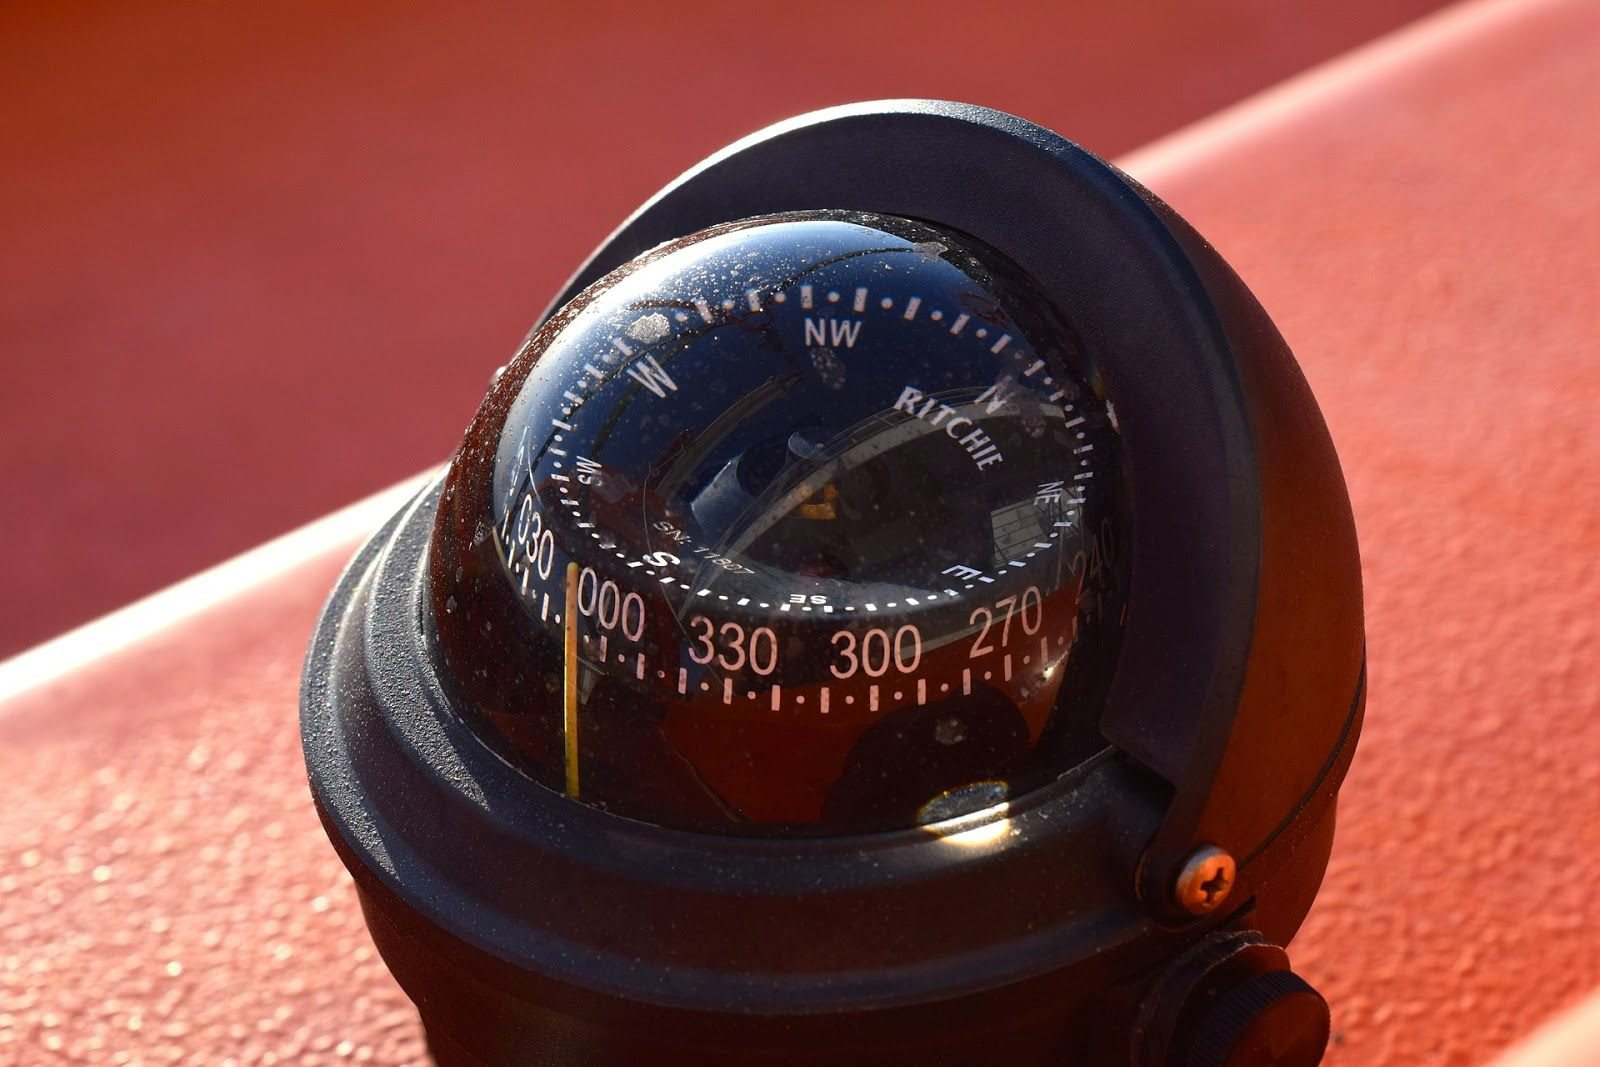 RNLI St IVes Lifeboat Compass